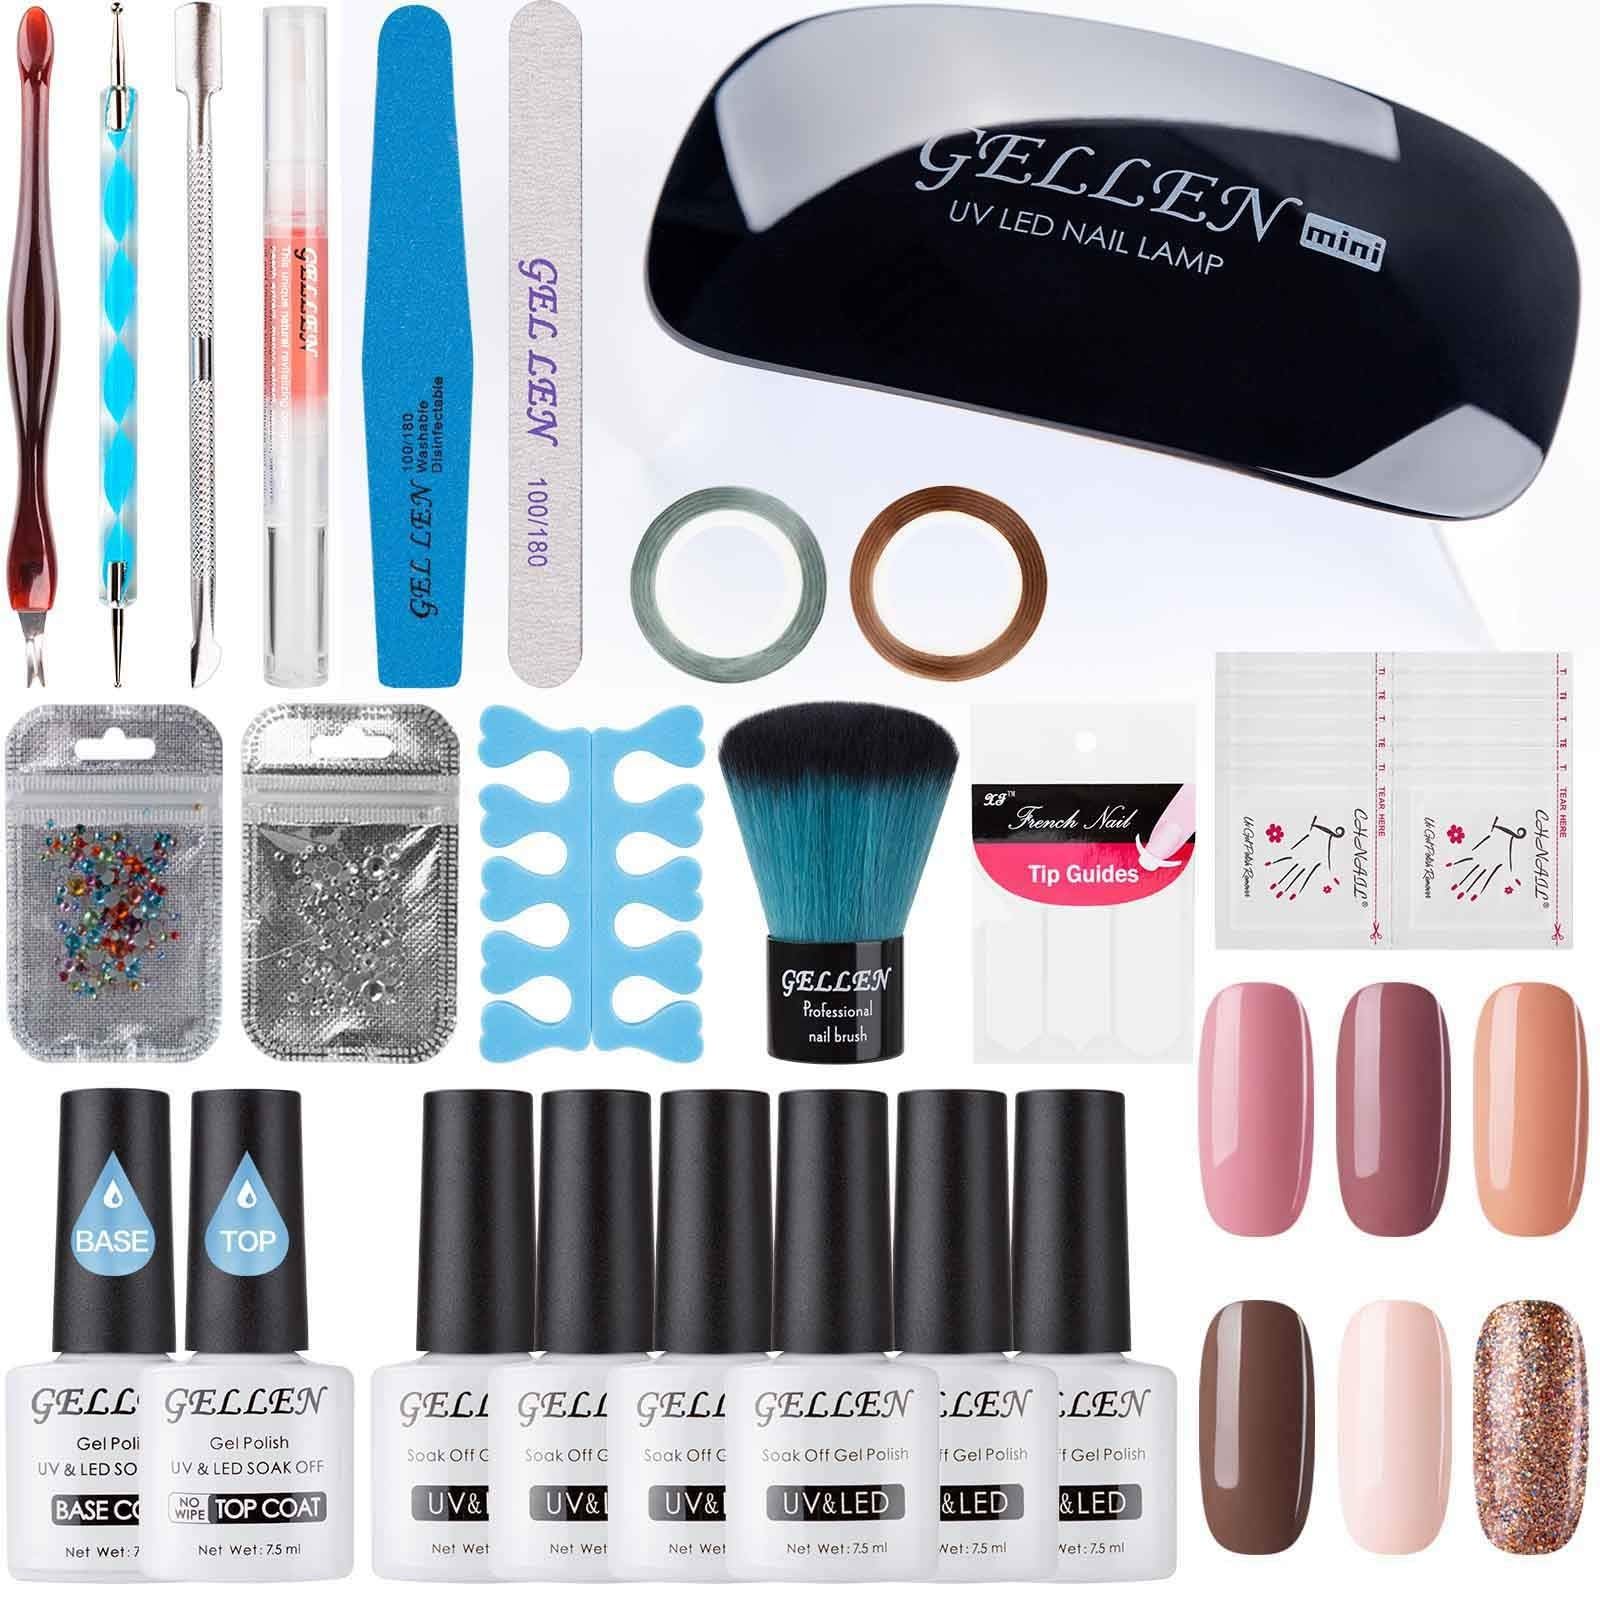 Gellen Gel Polish Starter Kit